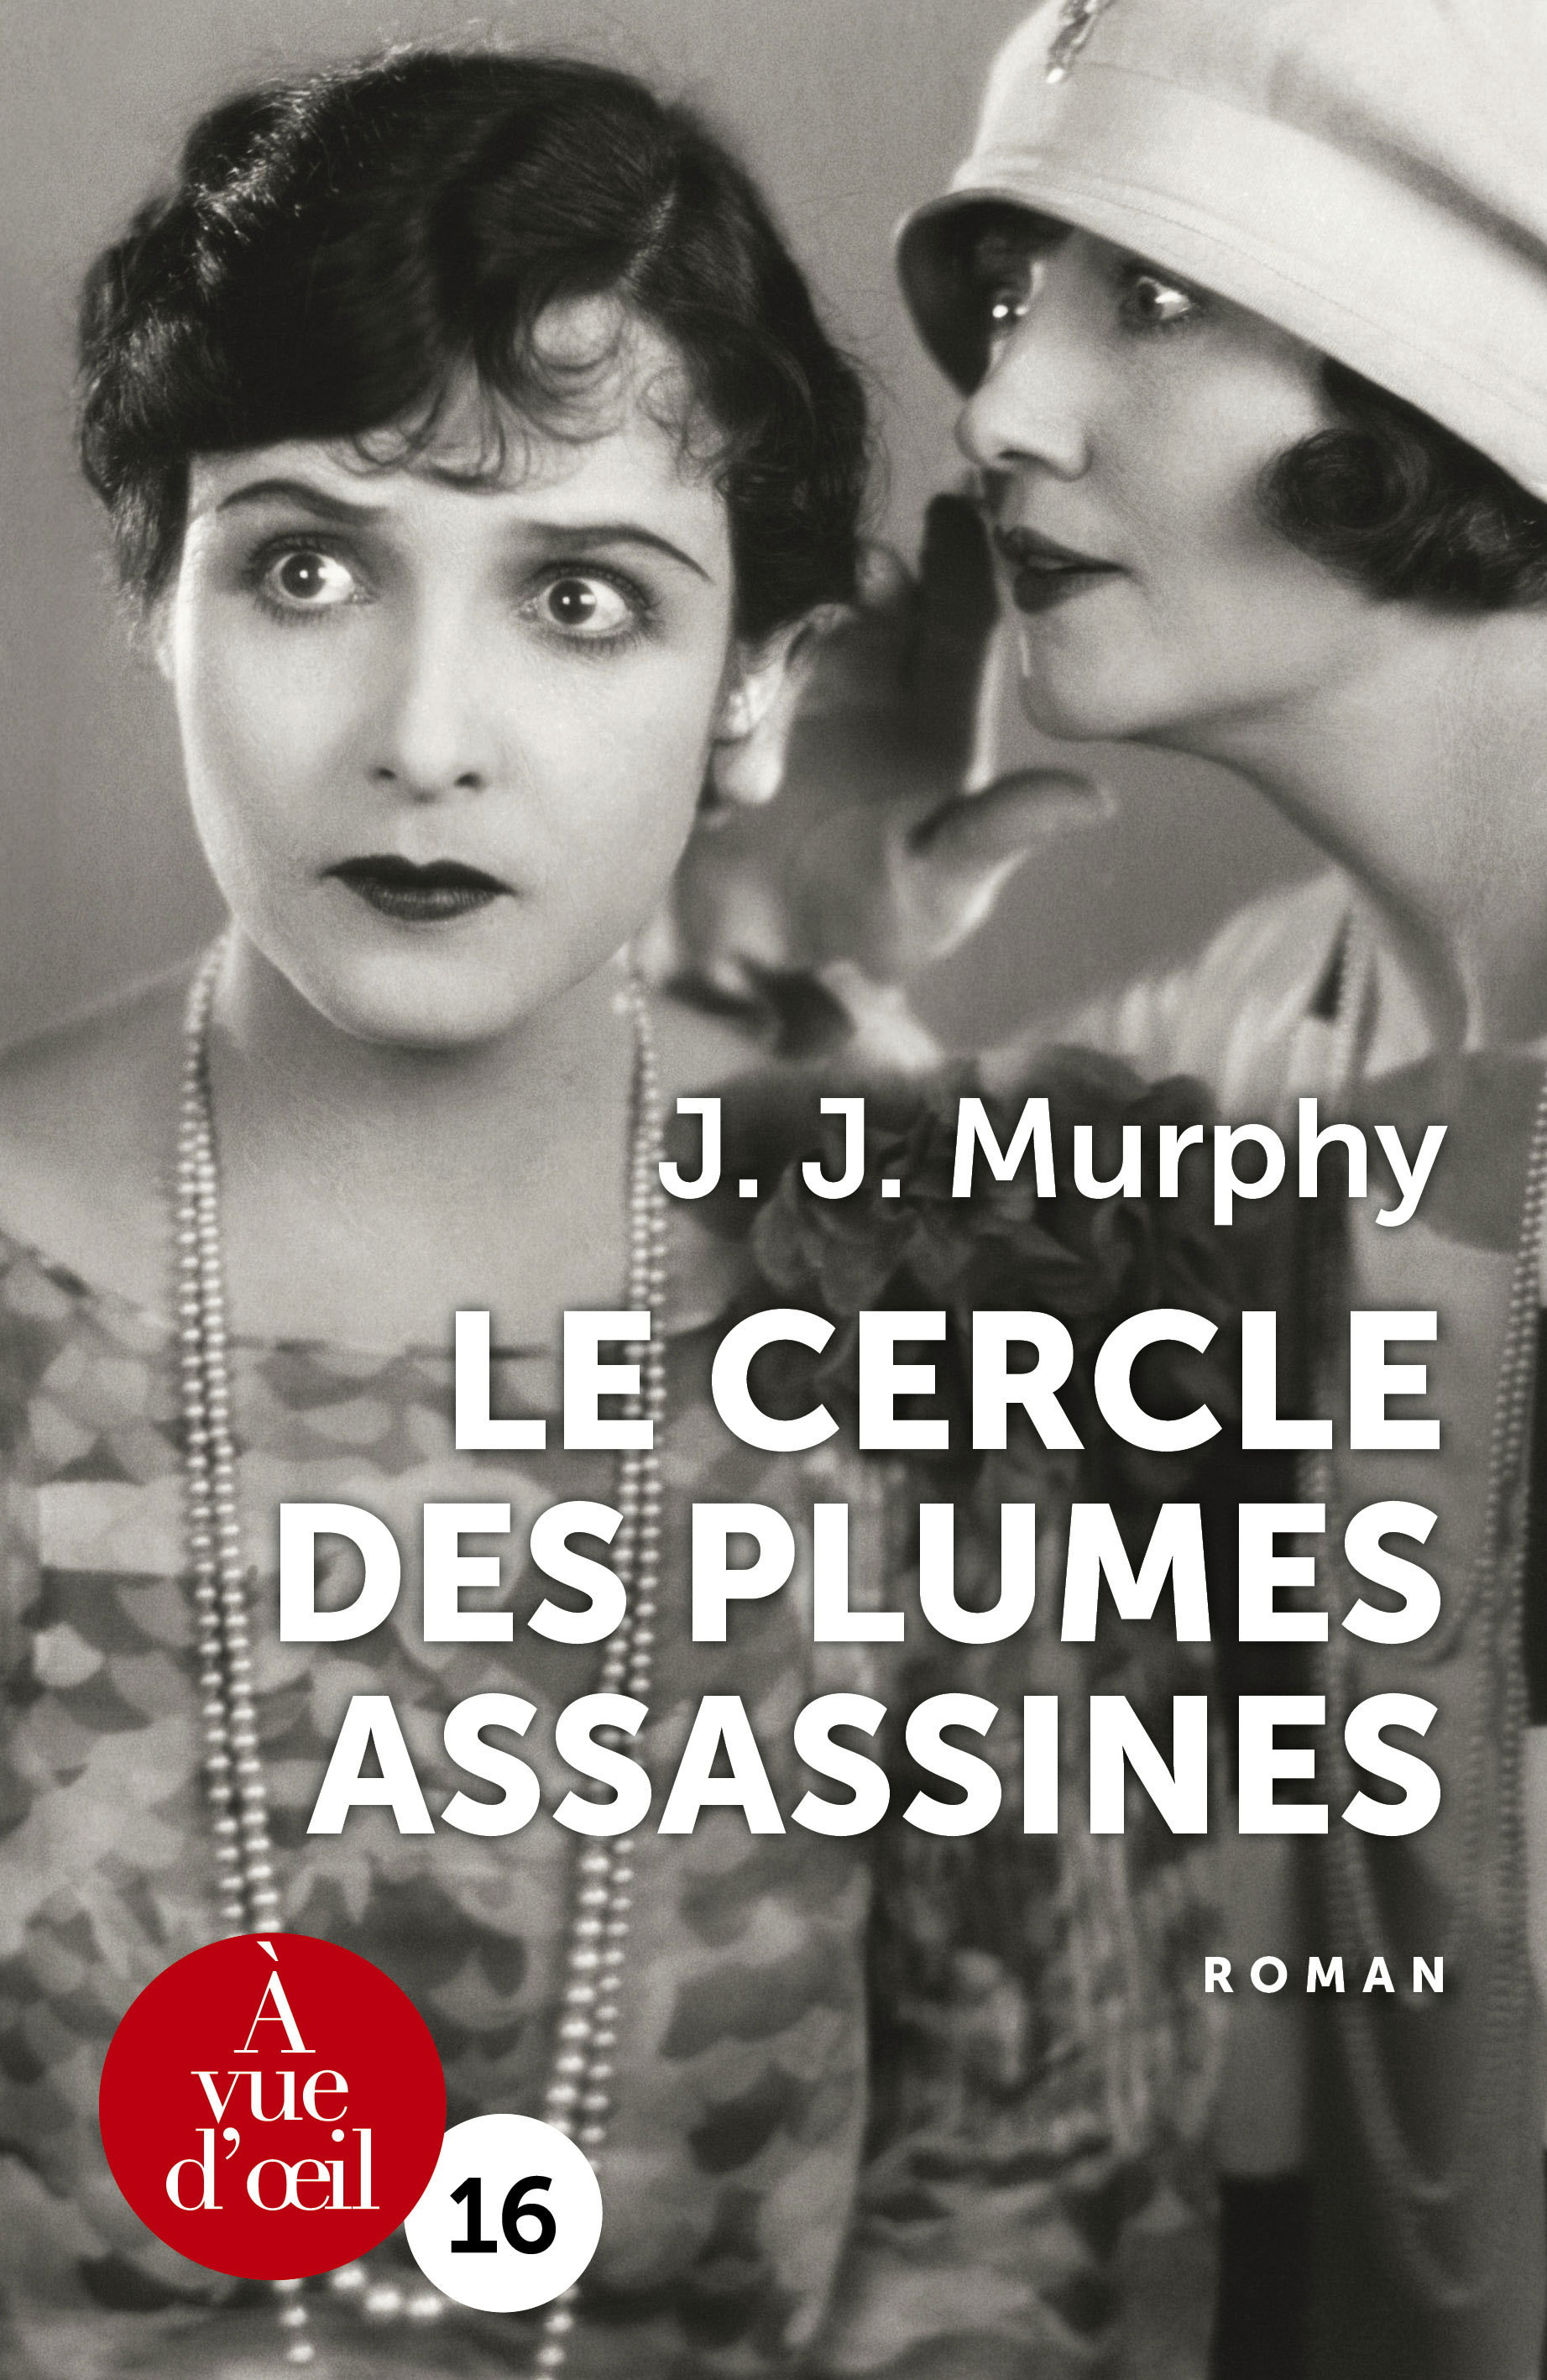 LE CERCLE DES PLUMES ASSASSINES